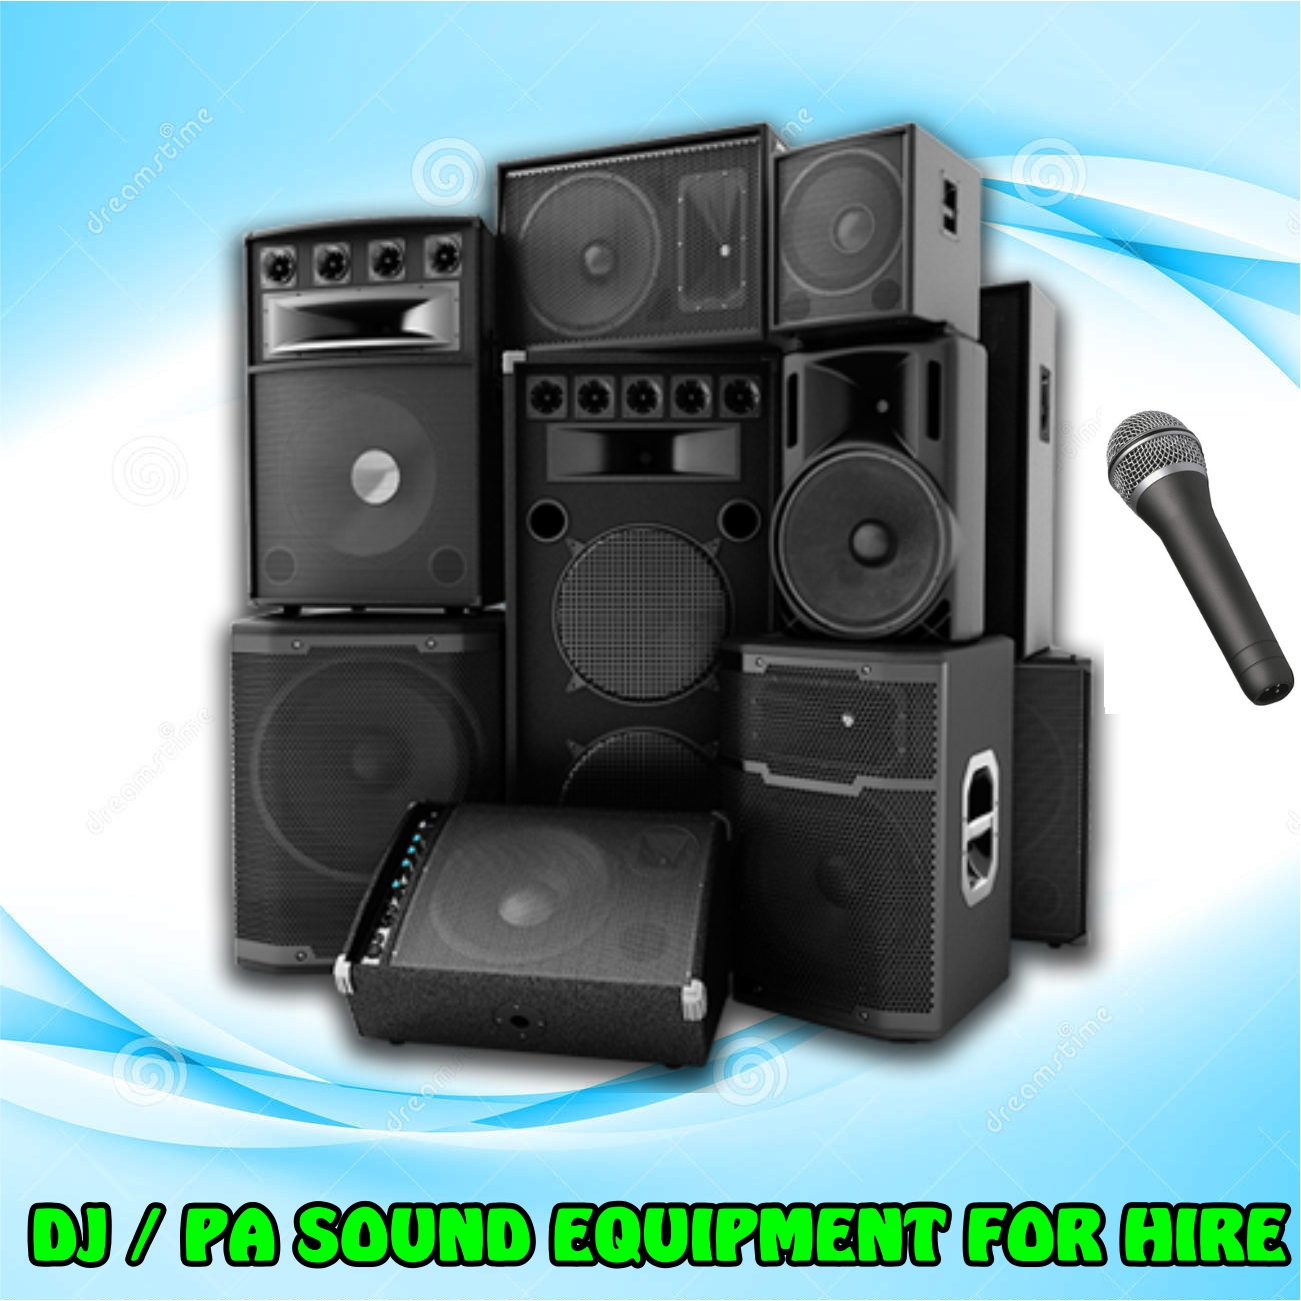 Sound Dj Equipment For Dry Hire From Our Most Affordable Deal Hiring Of Pa